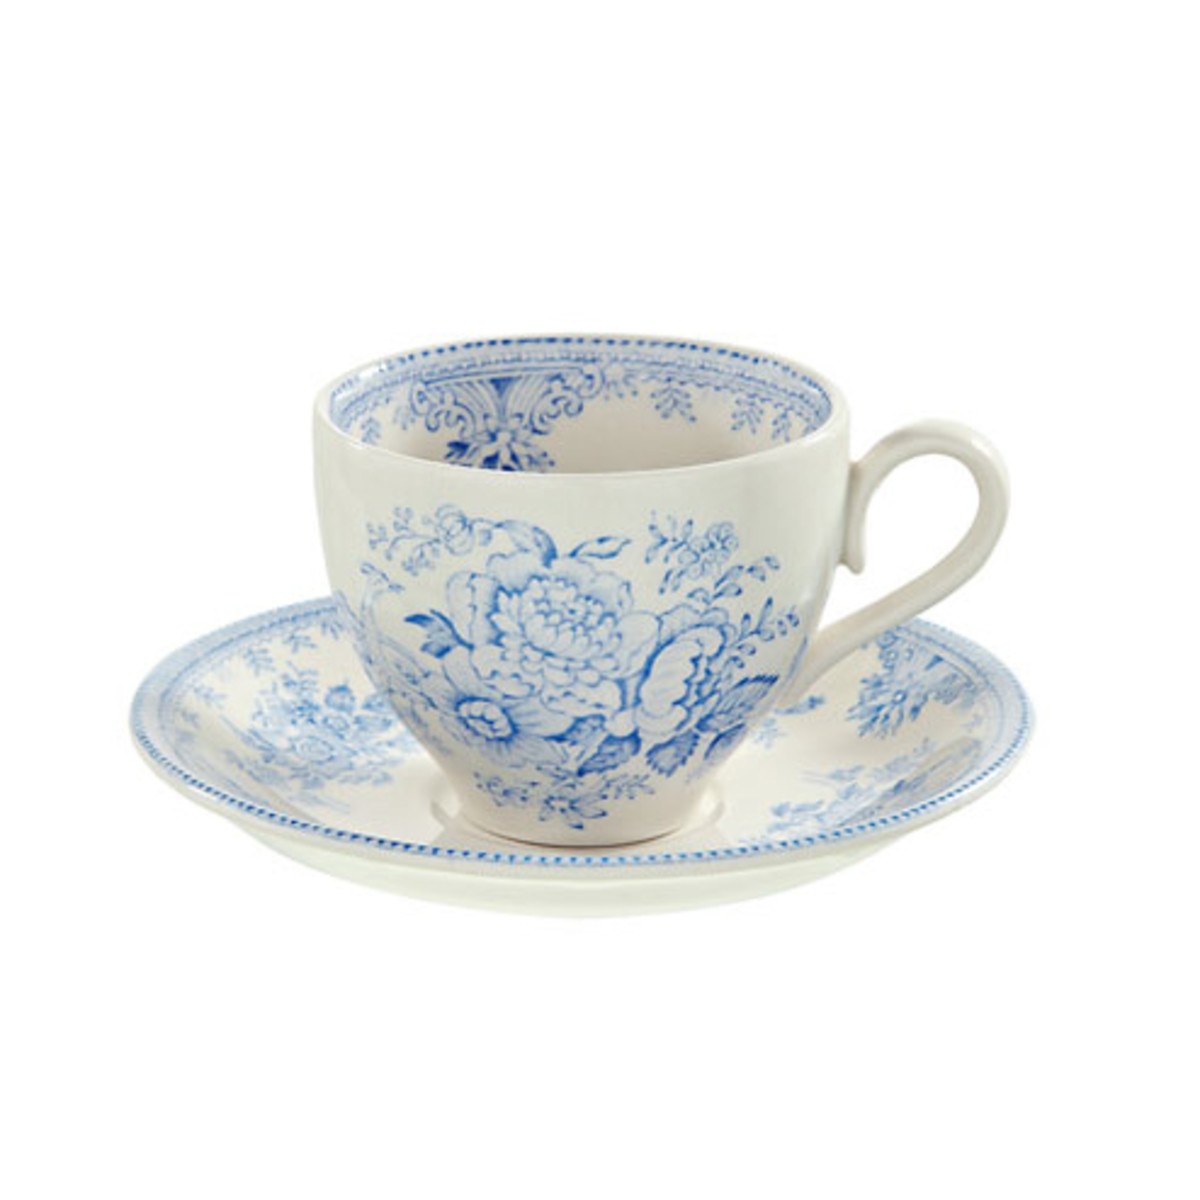 British Isles Burleigh Pottery teacup and saucer